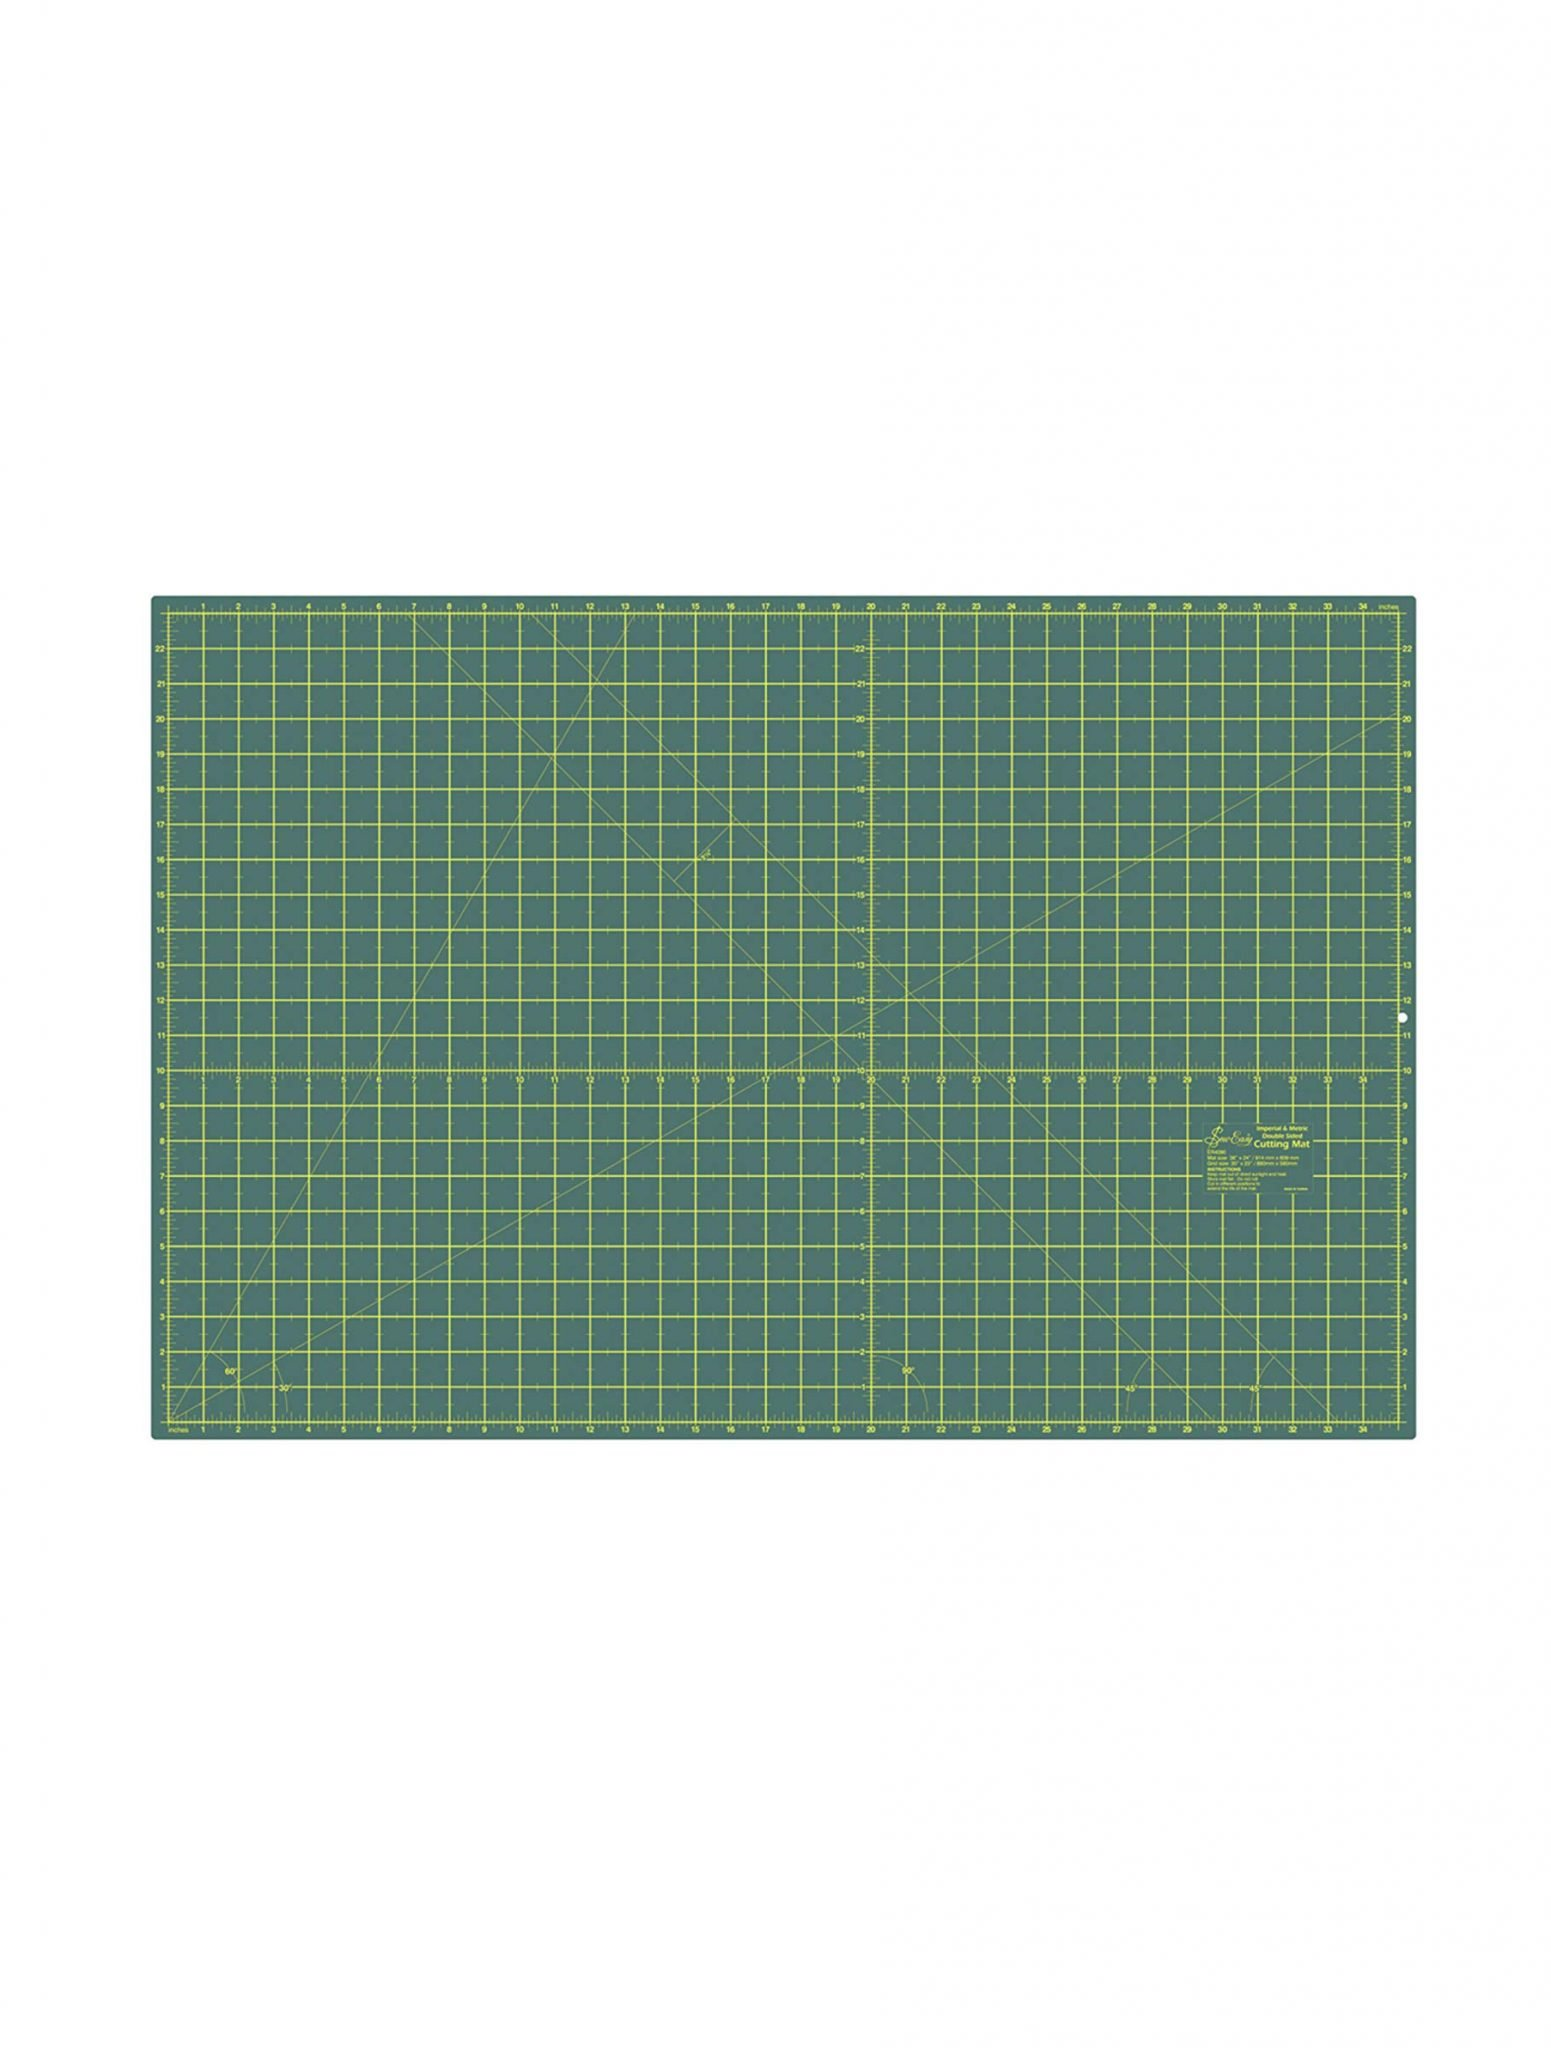 Sew Easy Double Sided Cutting Mat Self Healing 90 cm x 60cm 36 inches 24 inches Quilting